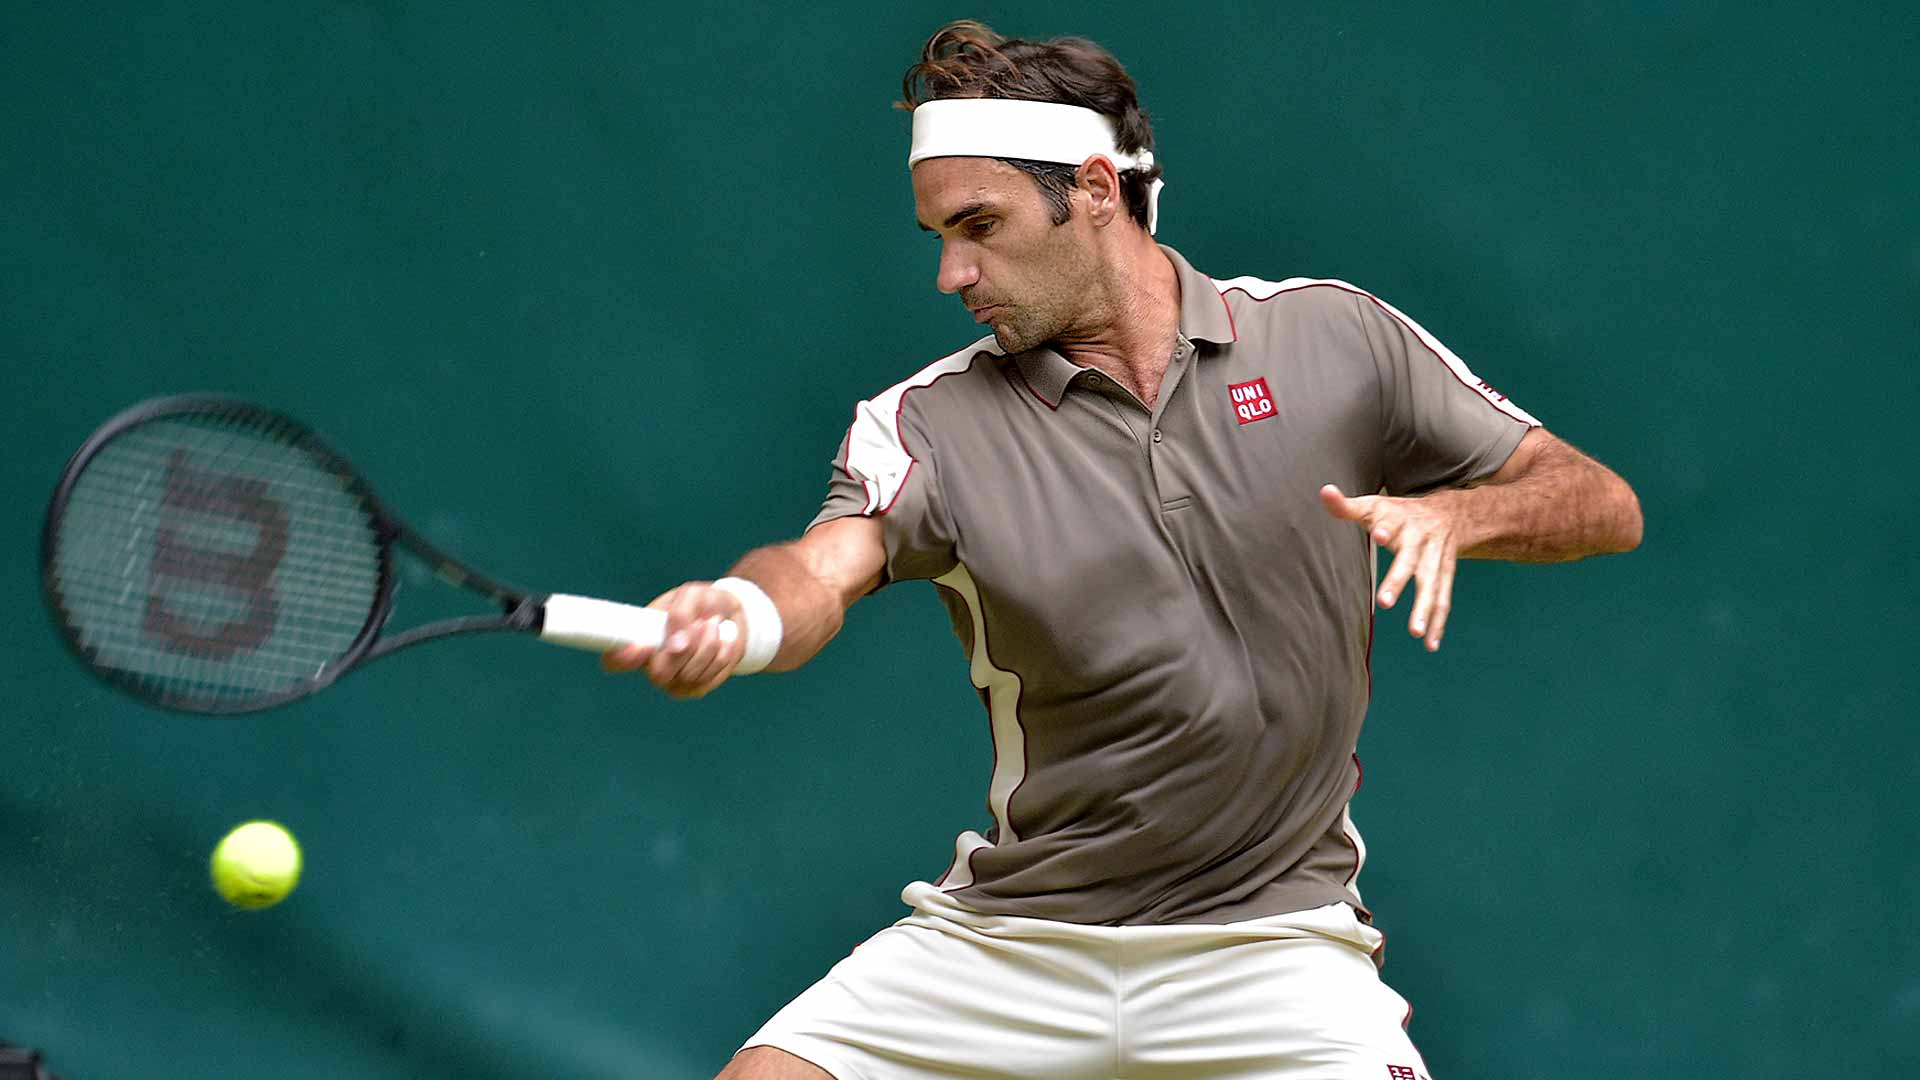 Roger Federer hits a forehand in Halle